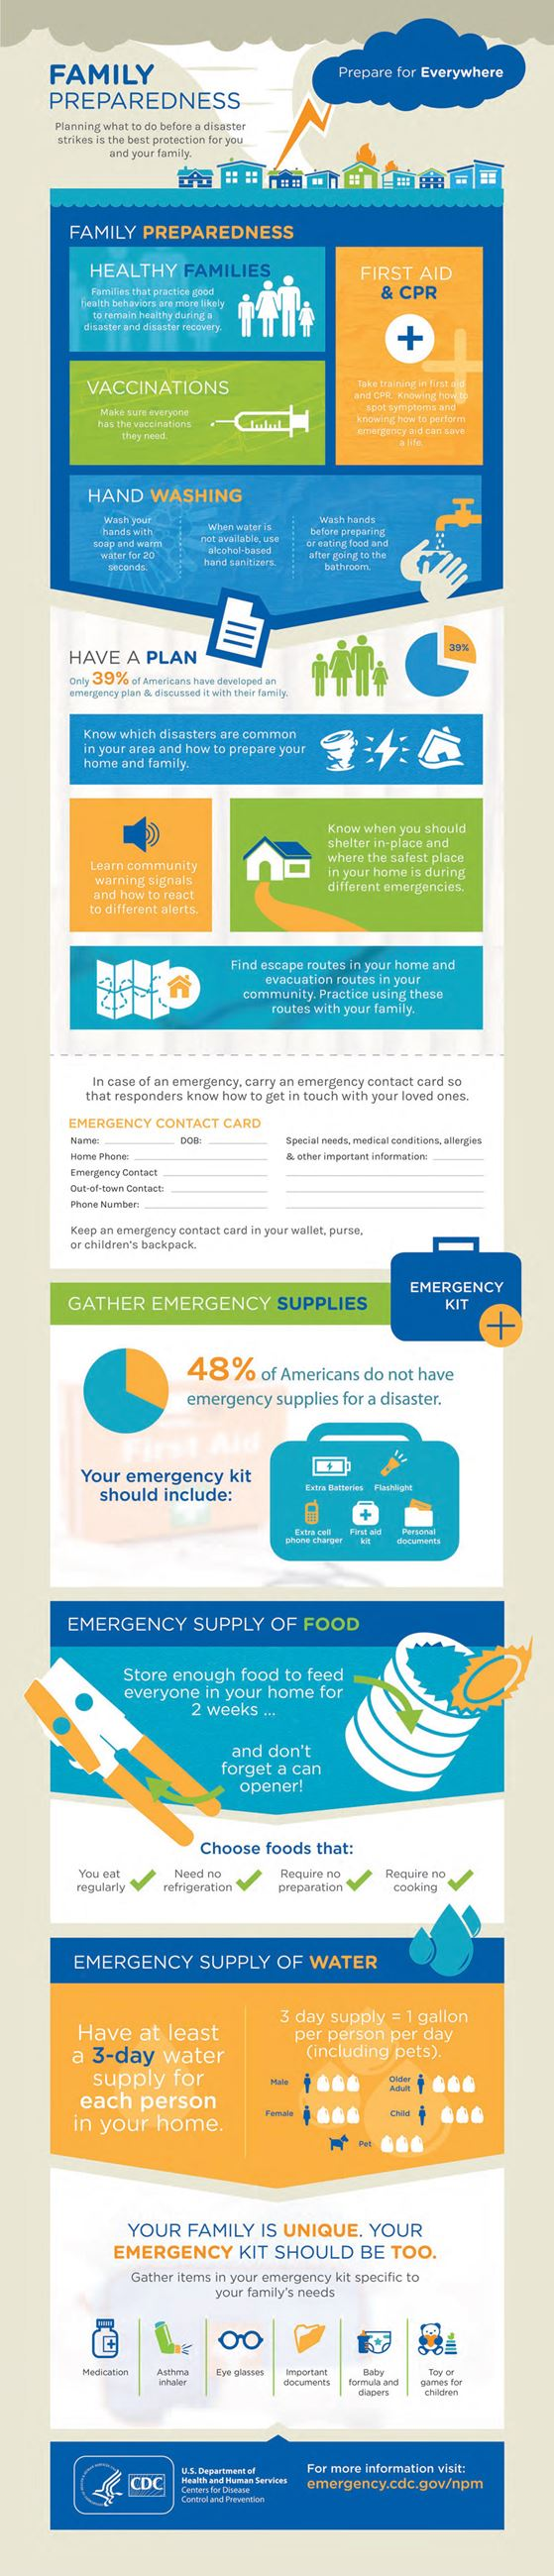 Emergency Preparedness at Home CDC